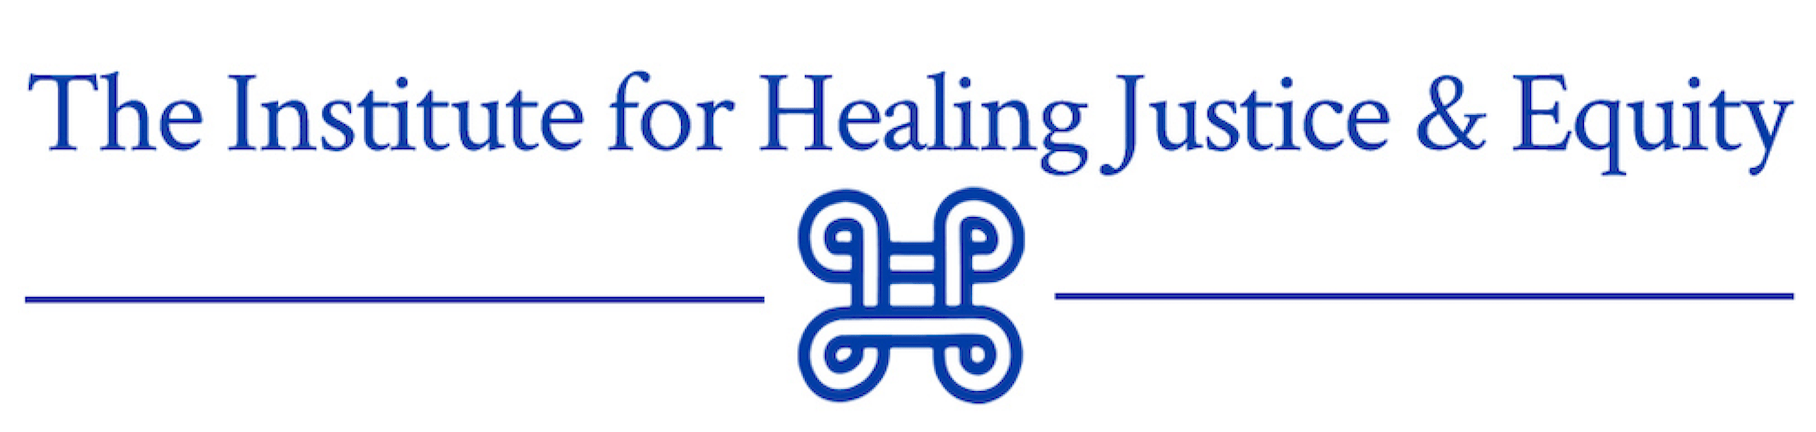 Institute for Healing Justice and Equity